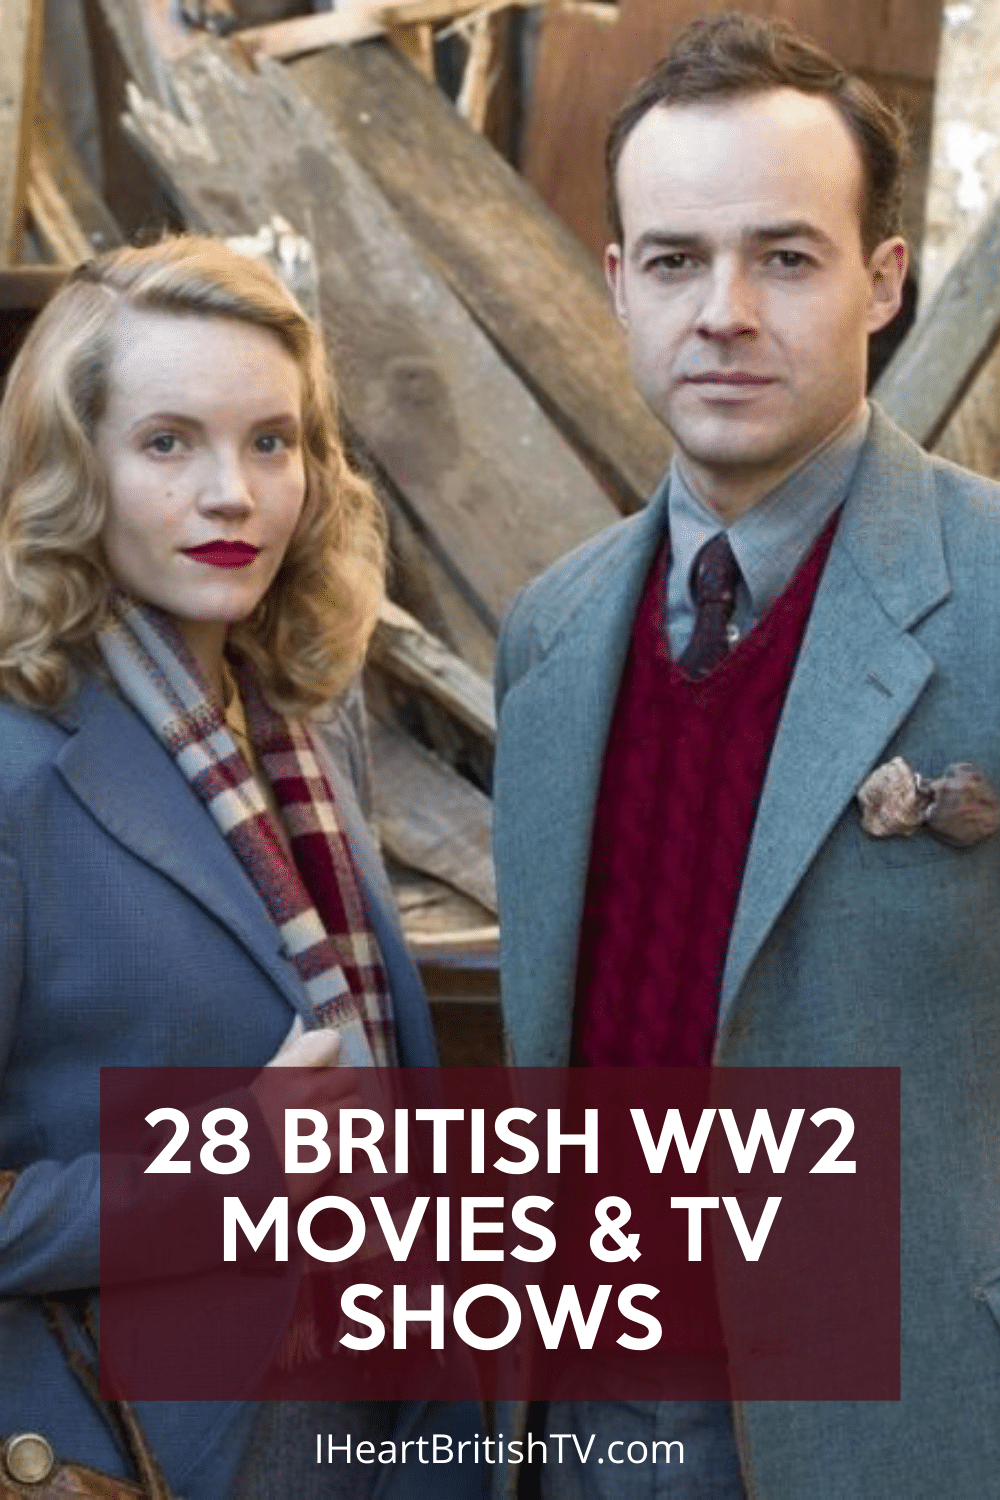 28 WWII Movies and TV Shows + Where To Watch Them 31